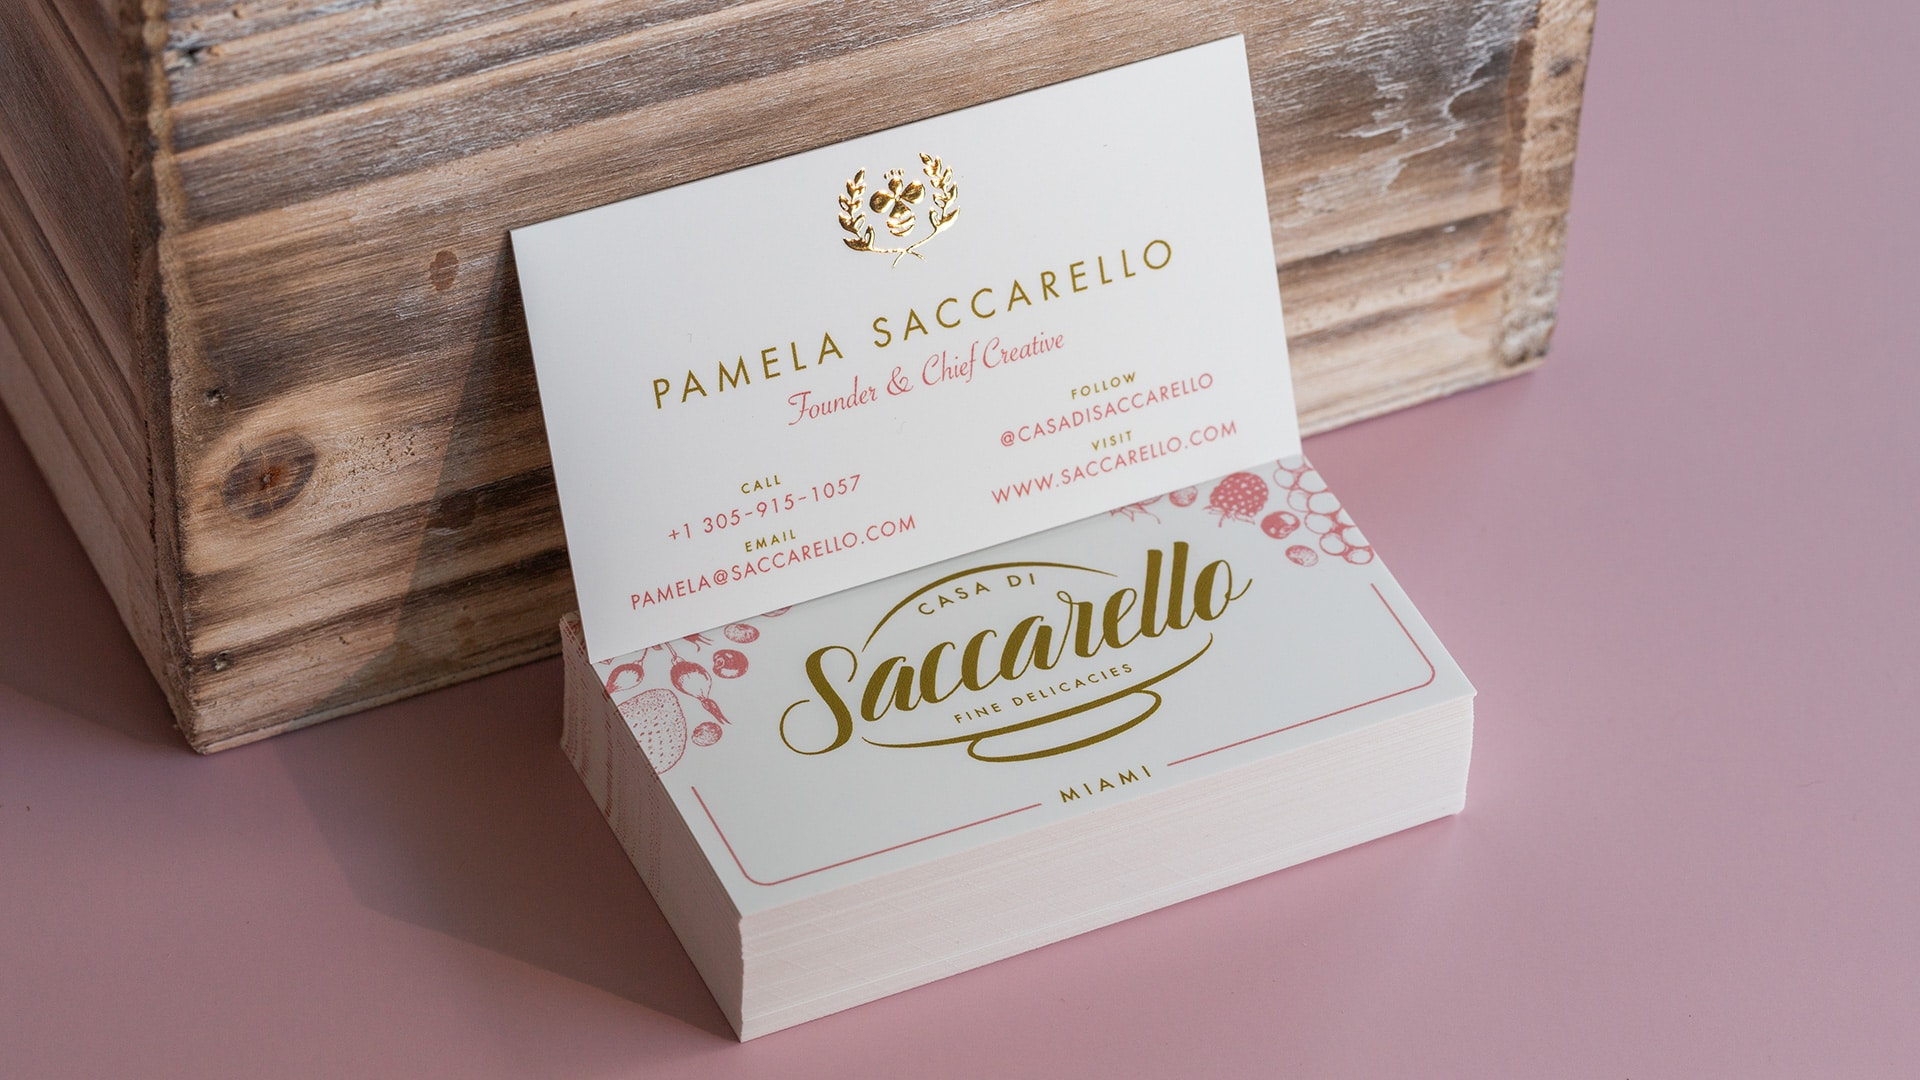 fitosophy-saccarello-business-cards1